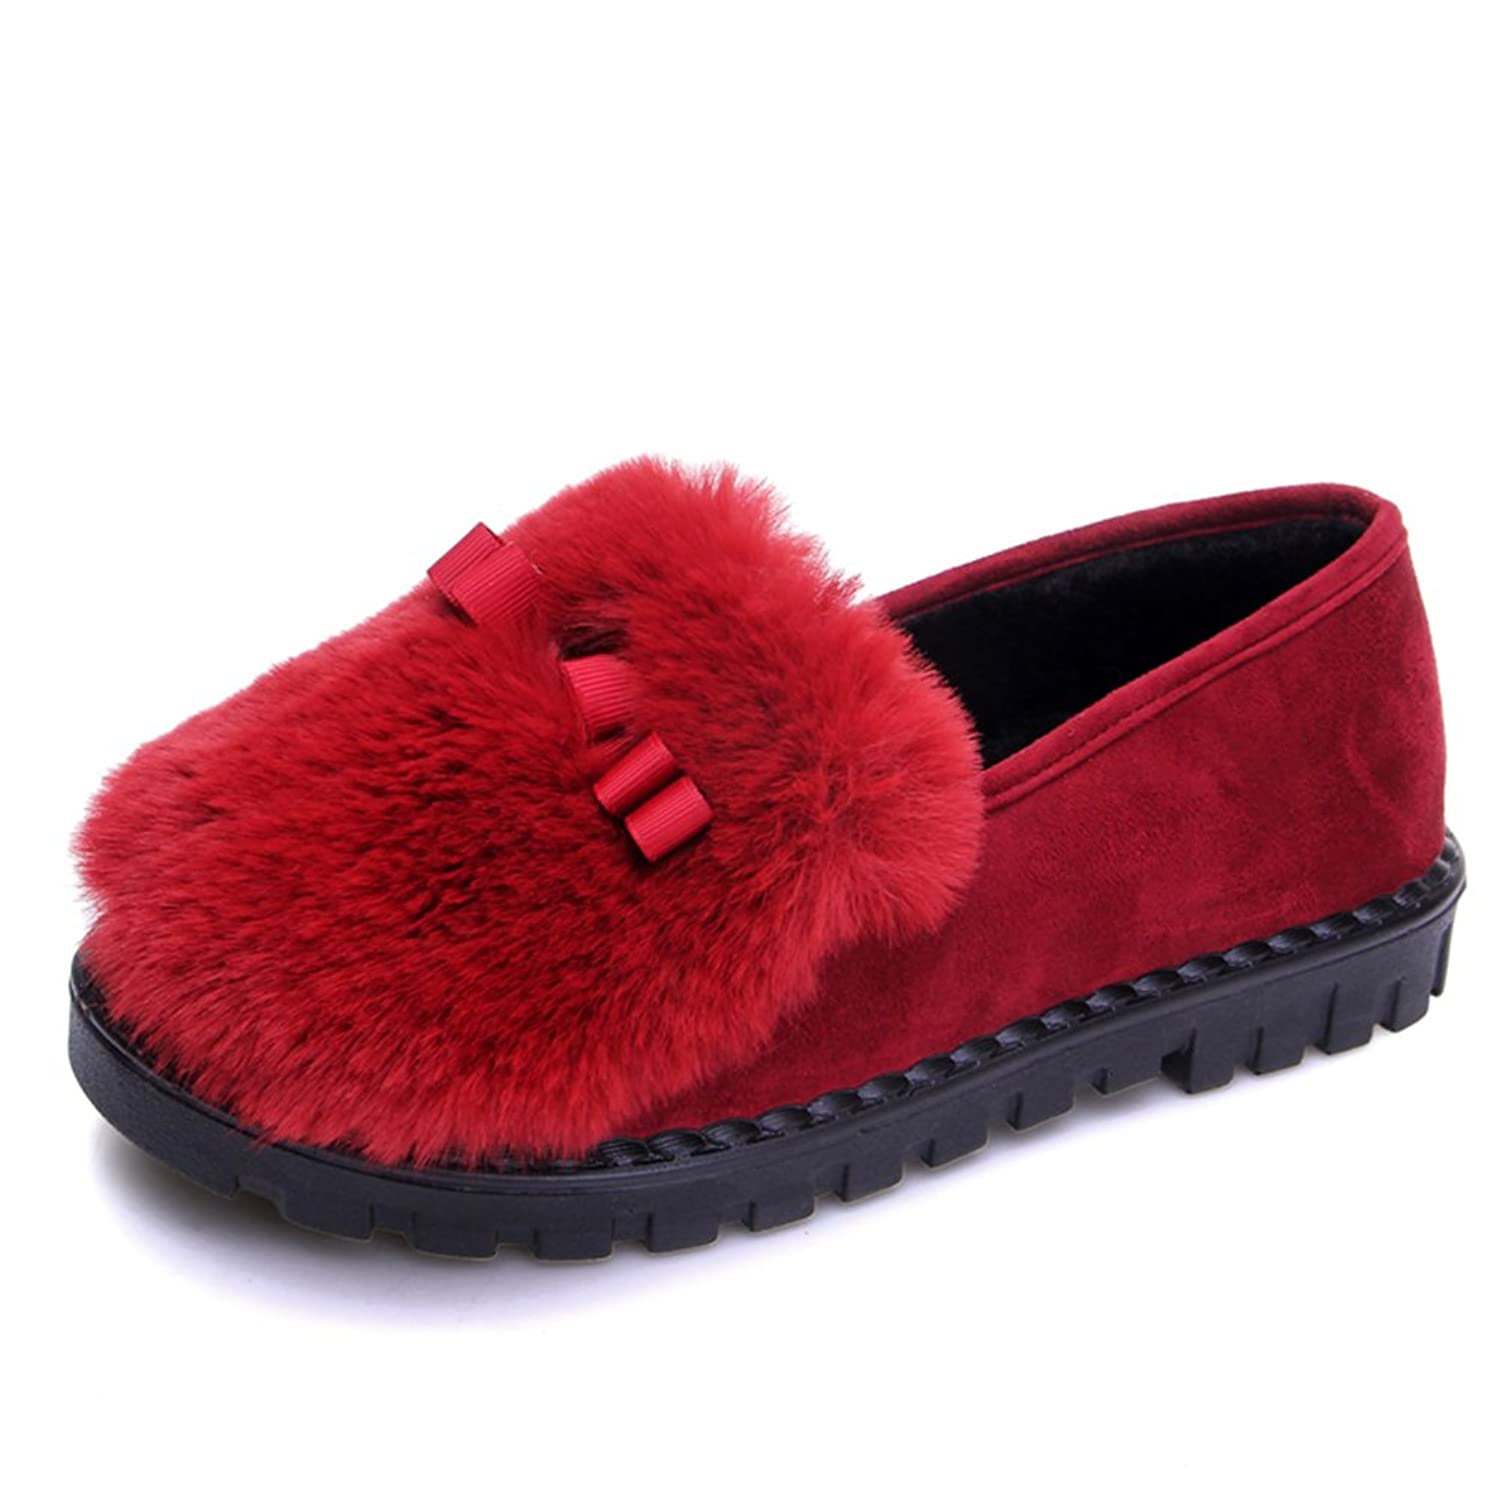 VASHOP Women's Fur Lined Bowknot Slip-On Full Treaded Sole Flat Winter Shoes